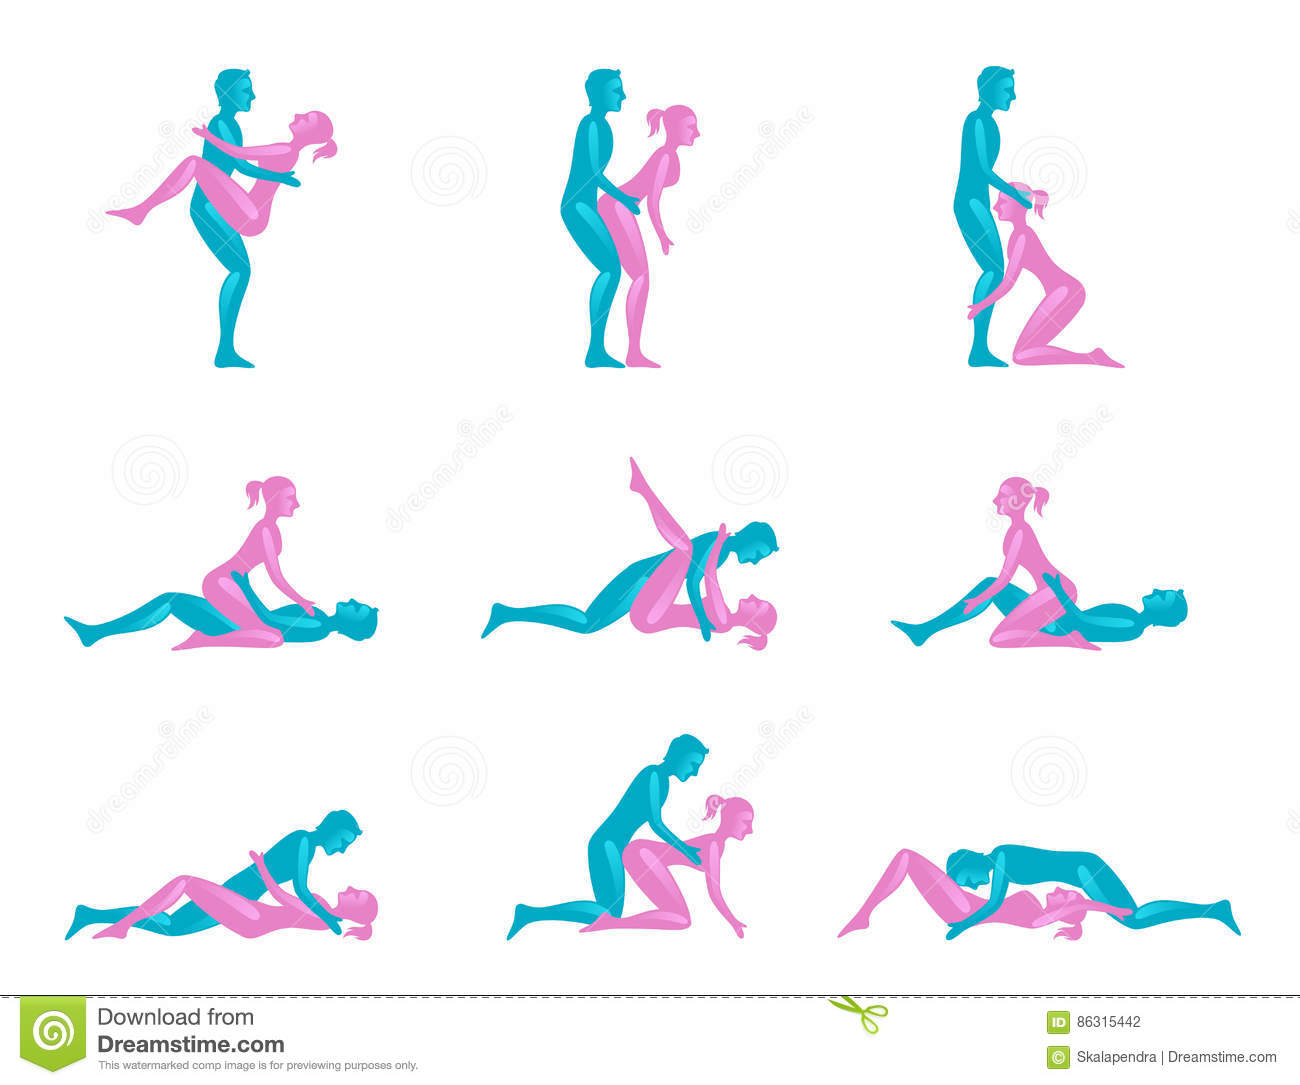 Sex position images royalty free